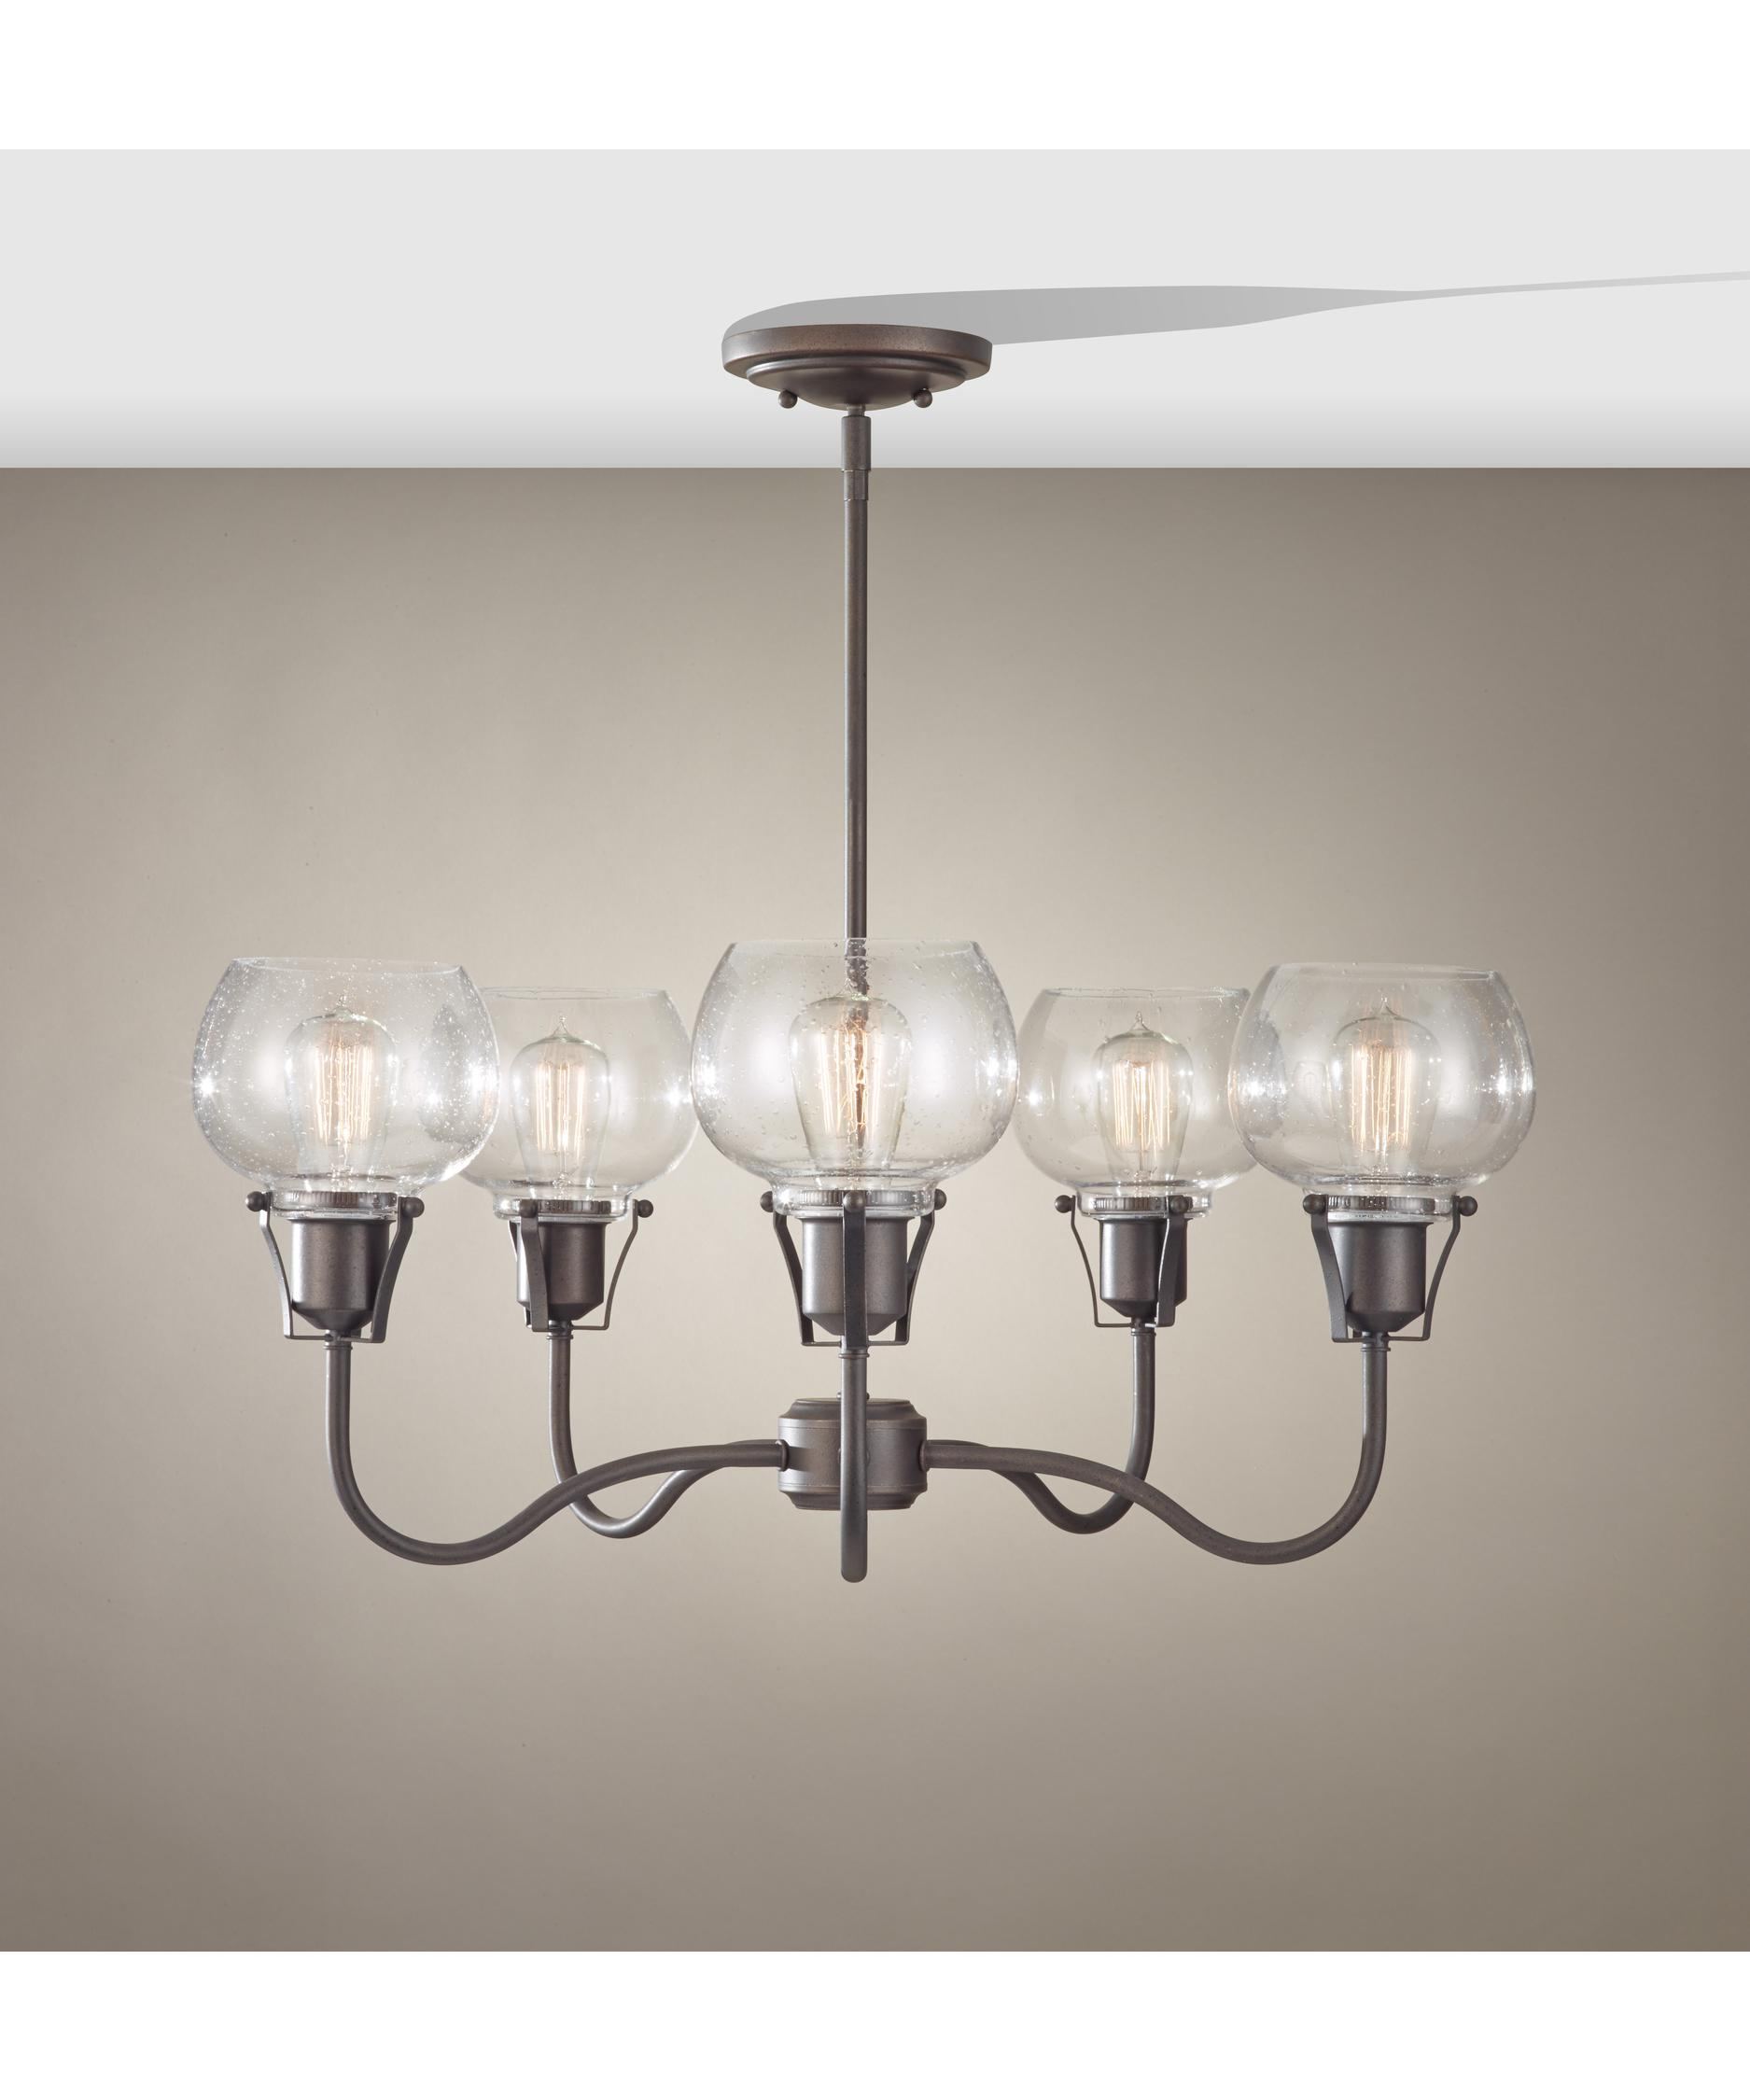 Murray Feiss Urban Renewal 27 Inch Wide 5 Light Chandelier – Murray Feiss Chandeliers